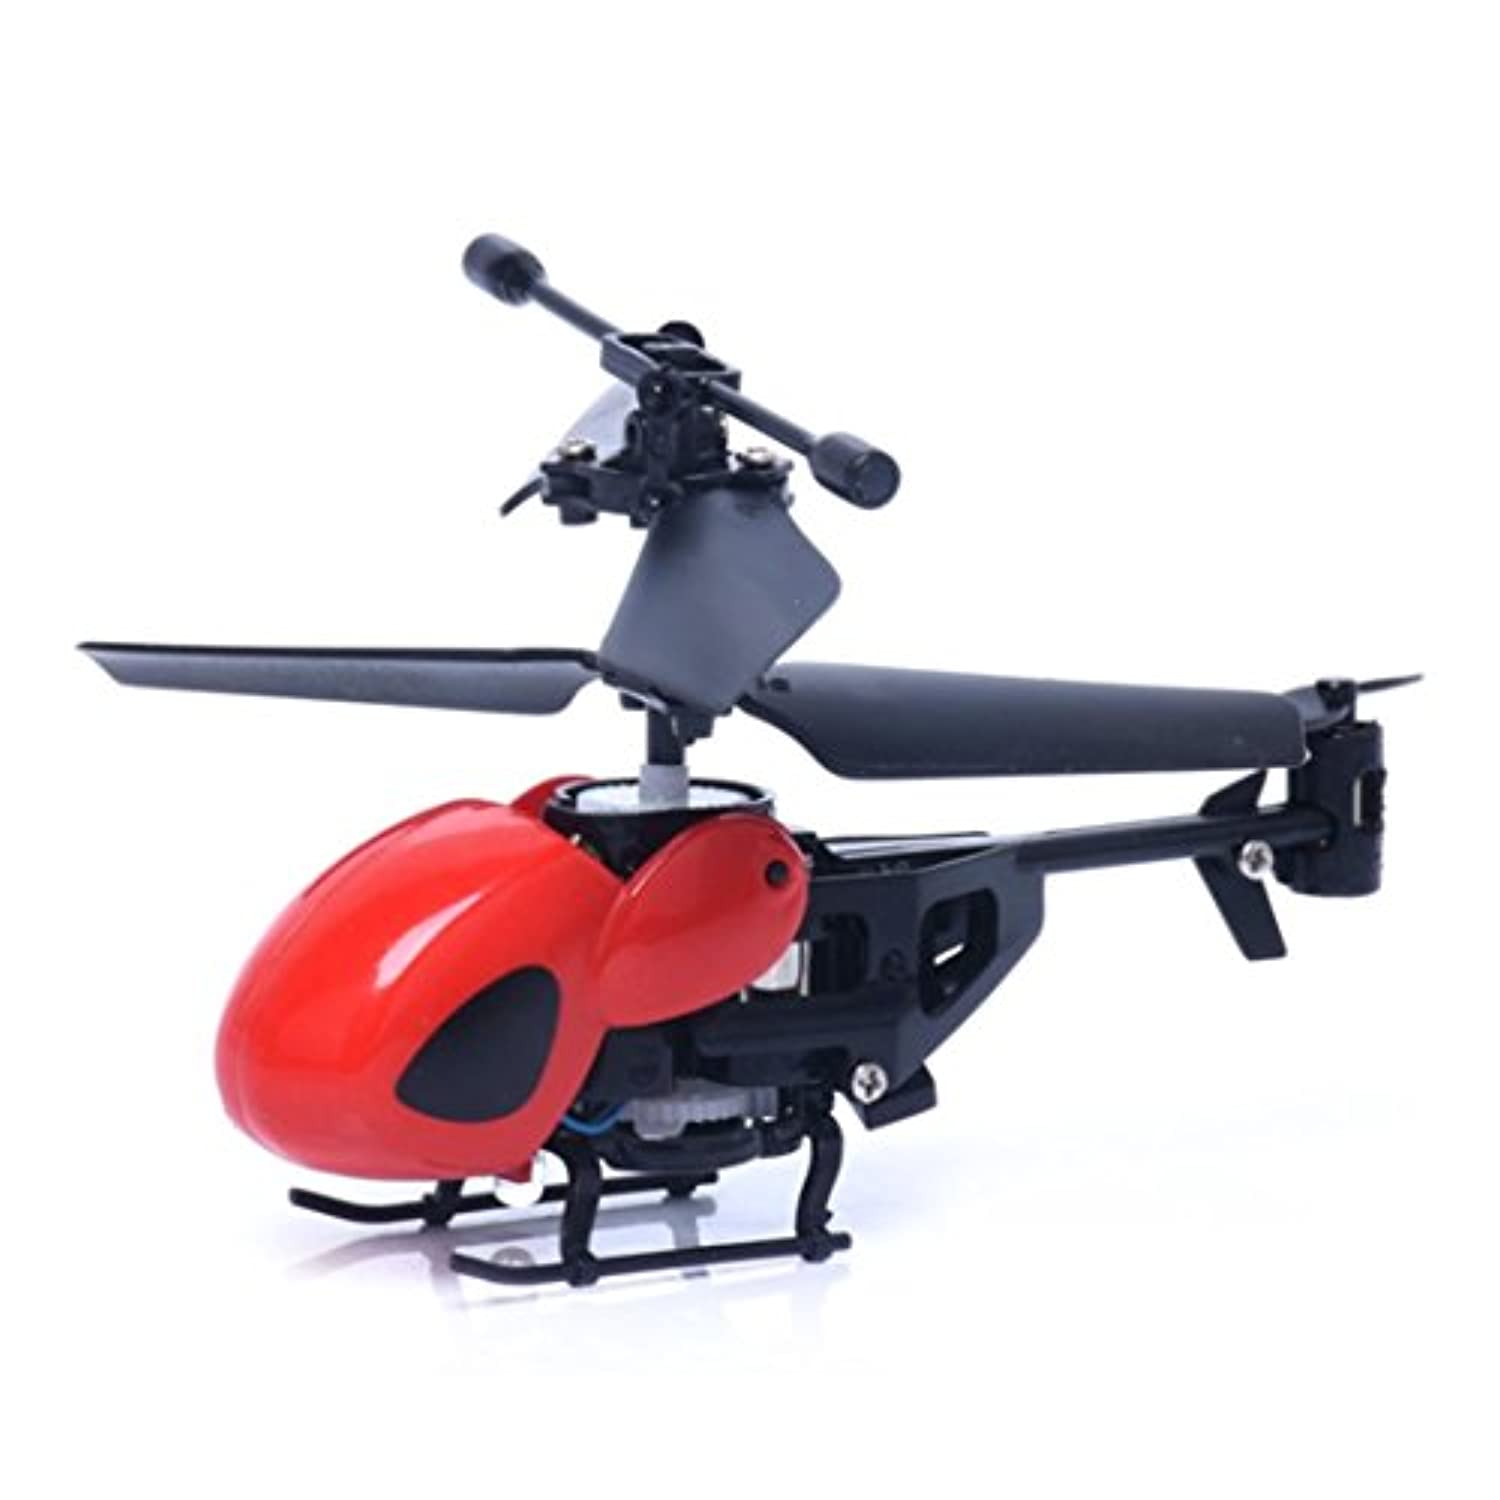 RC Helicopter, Lookatool RC 2CH Mini rc helicopter Radio Remote Control Aircraft Micro 2 Channel, Red by Lookatool